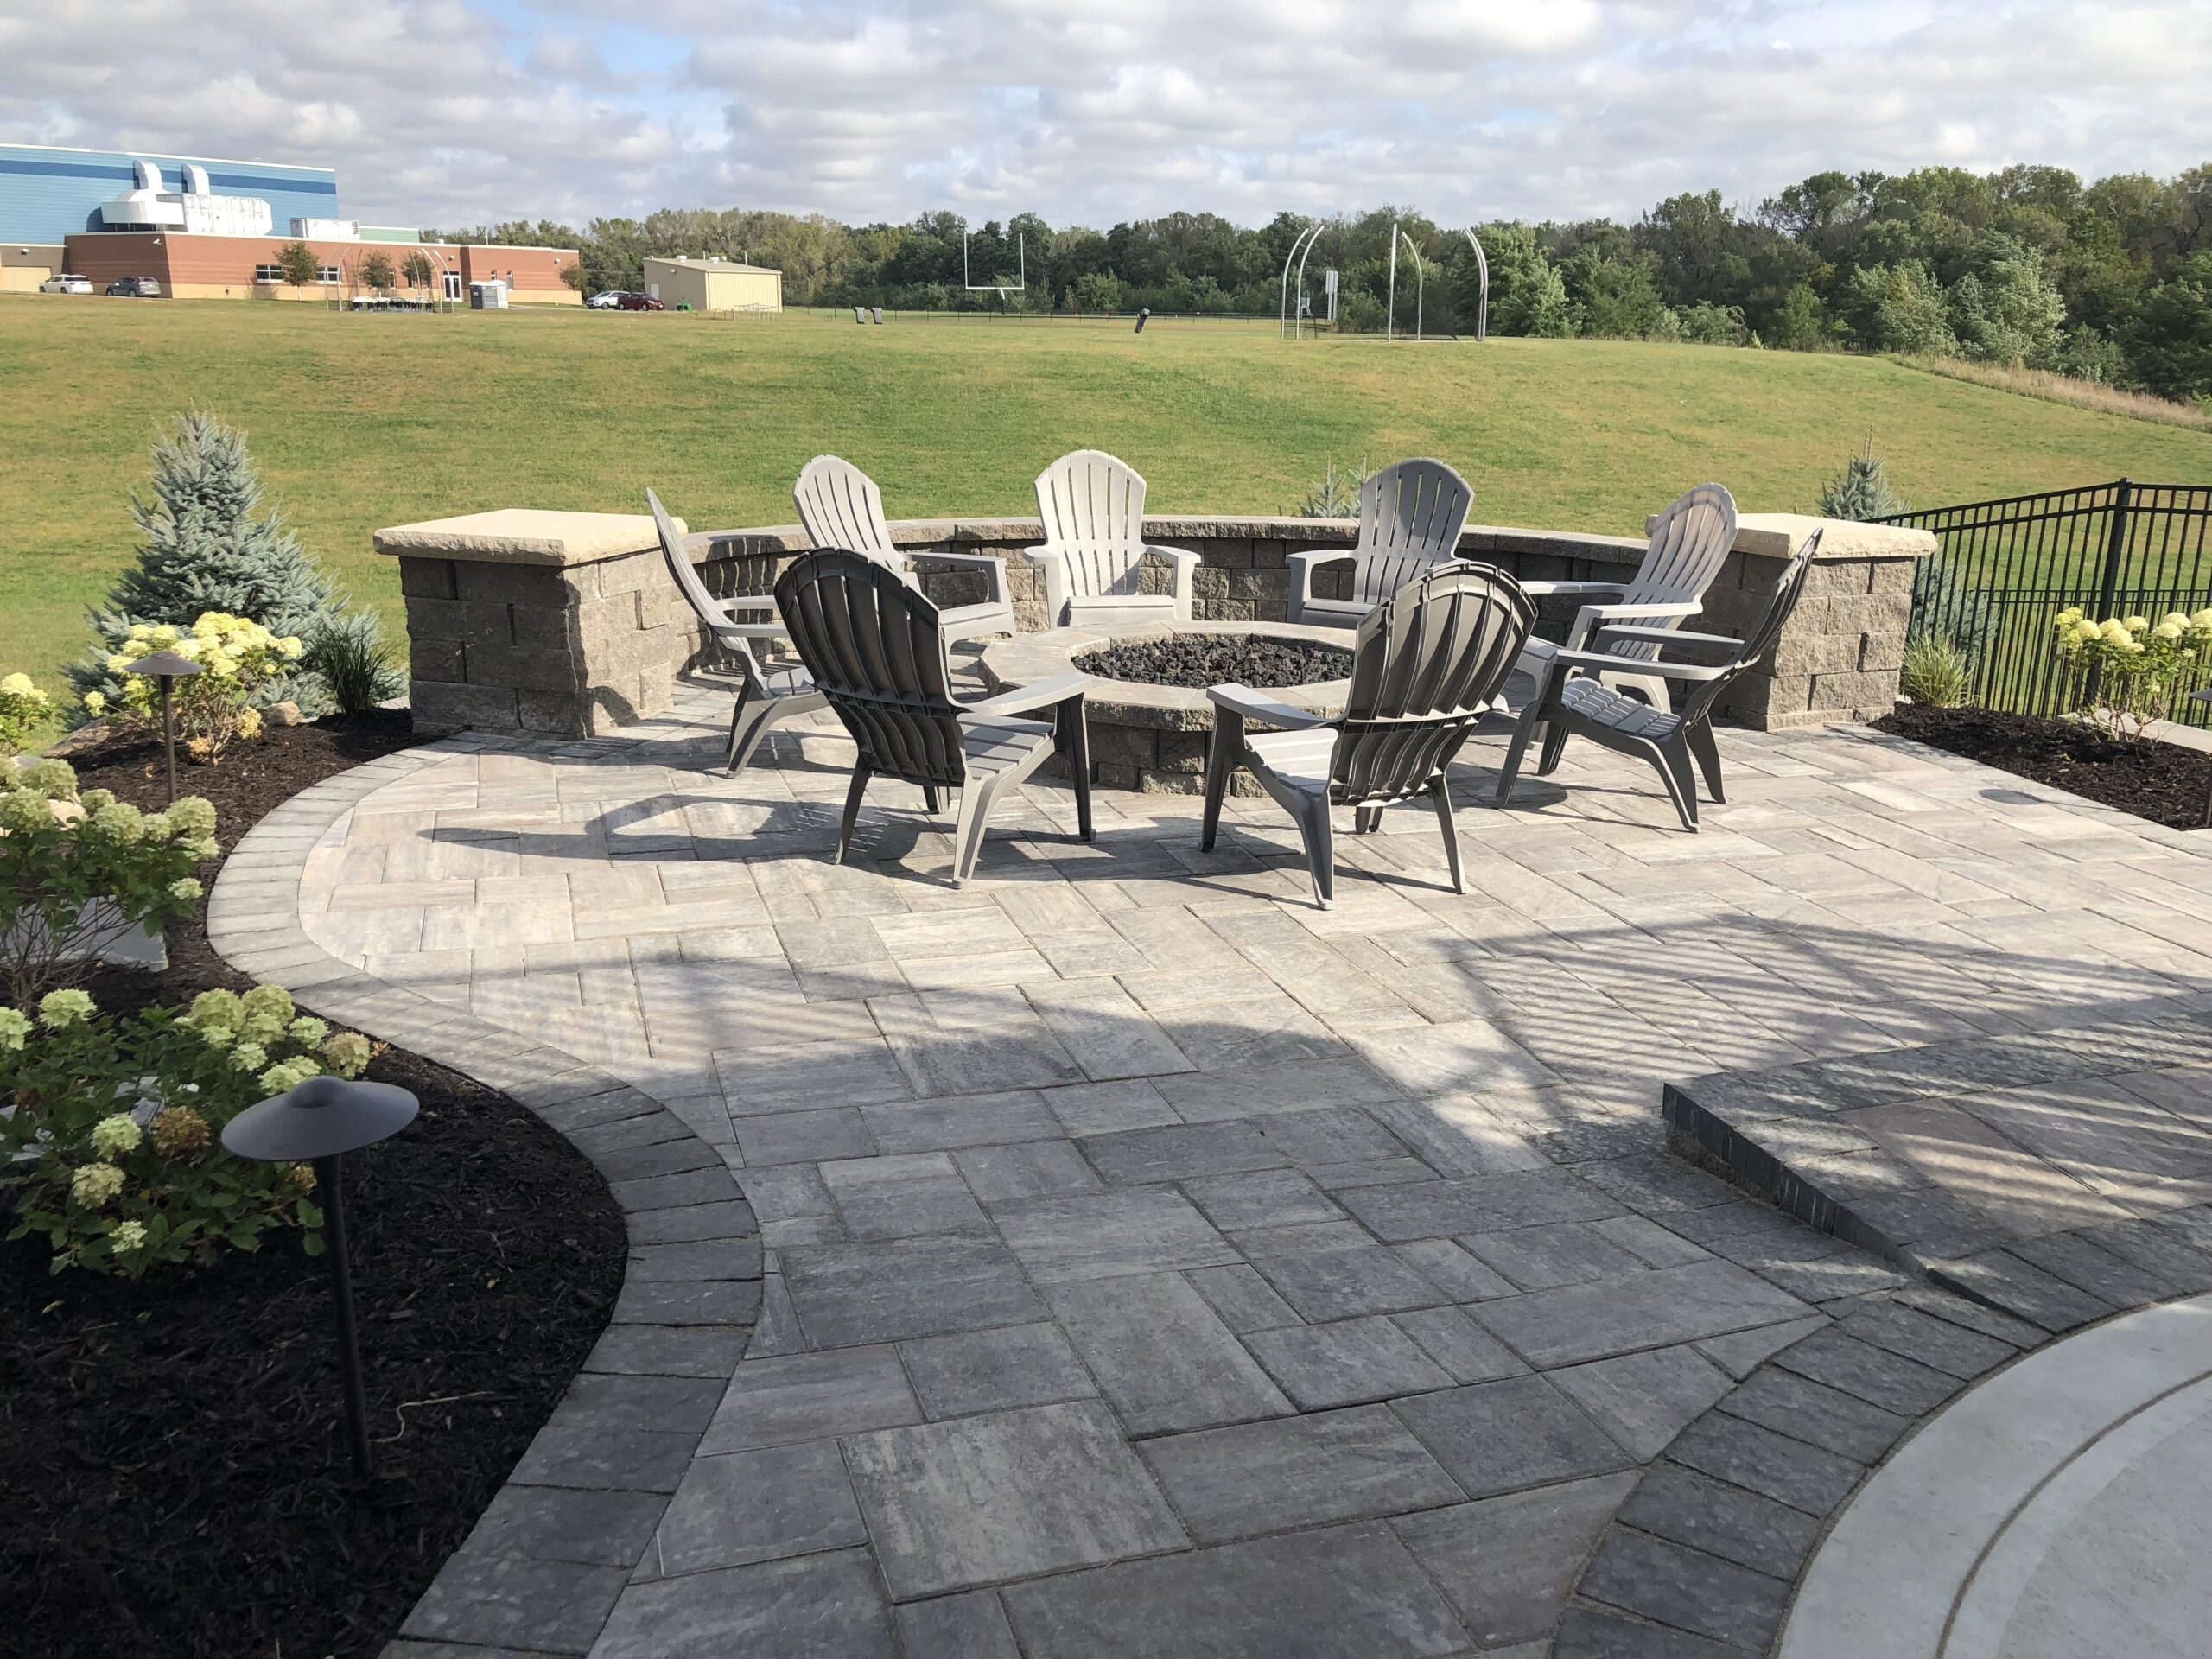 Patios Patera Landscaping Omaha Nebraska   Patio With Stairs From House   Concrete Slab   Simple   Back Yard   Composite Decking   Main Entrance Stamped Concrete Front